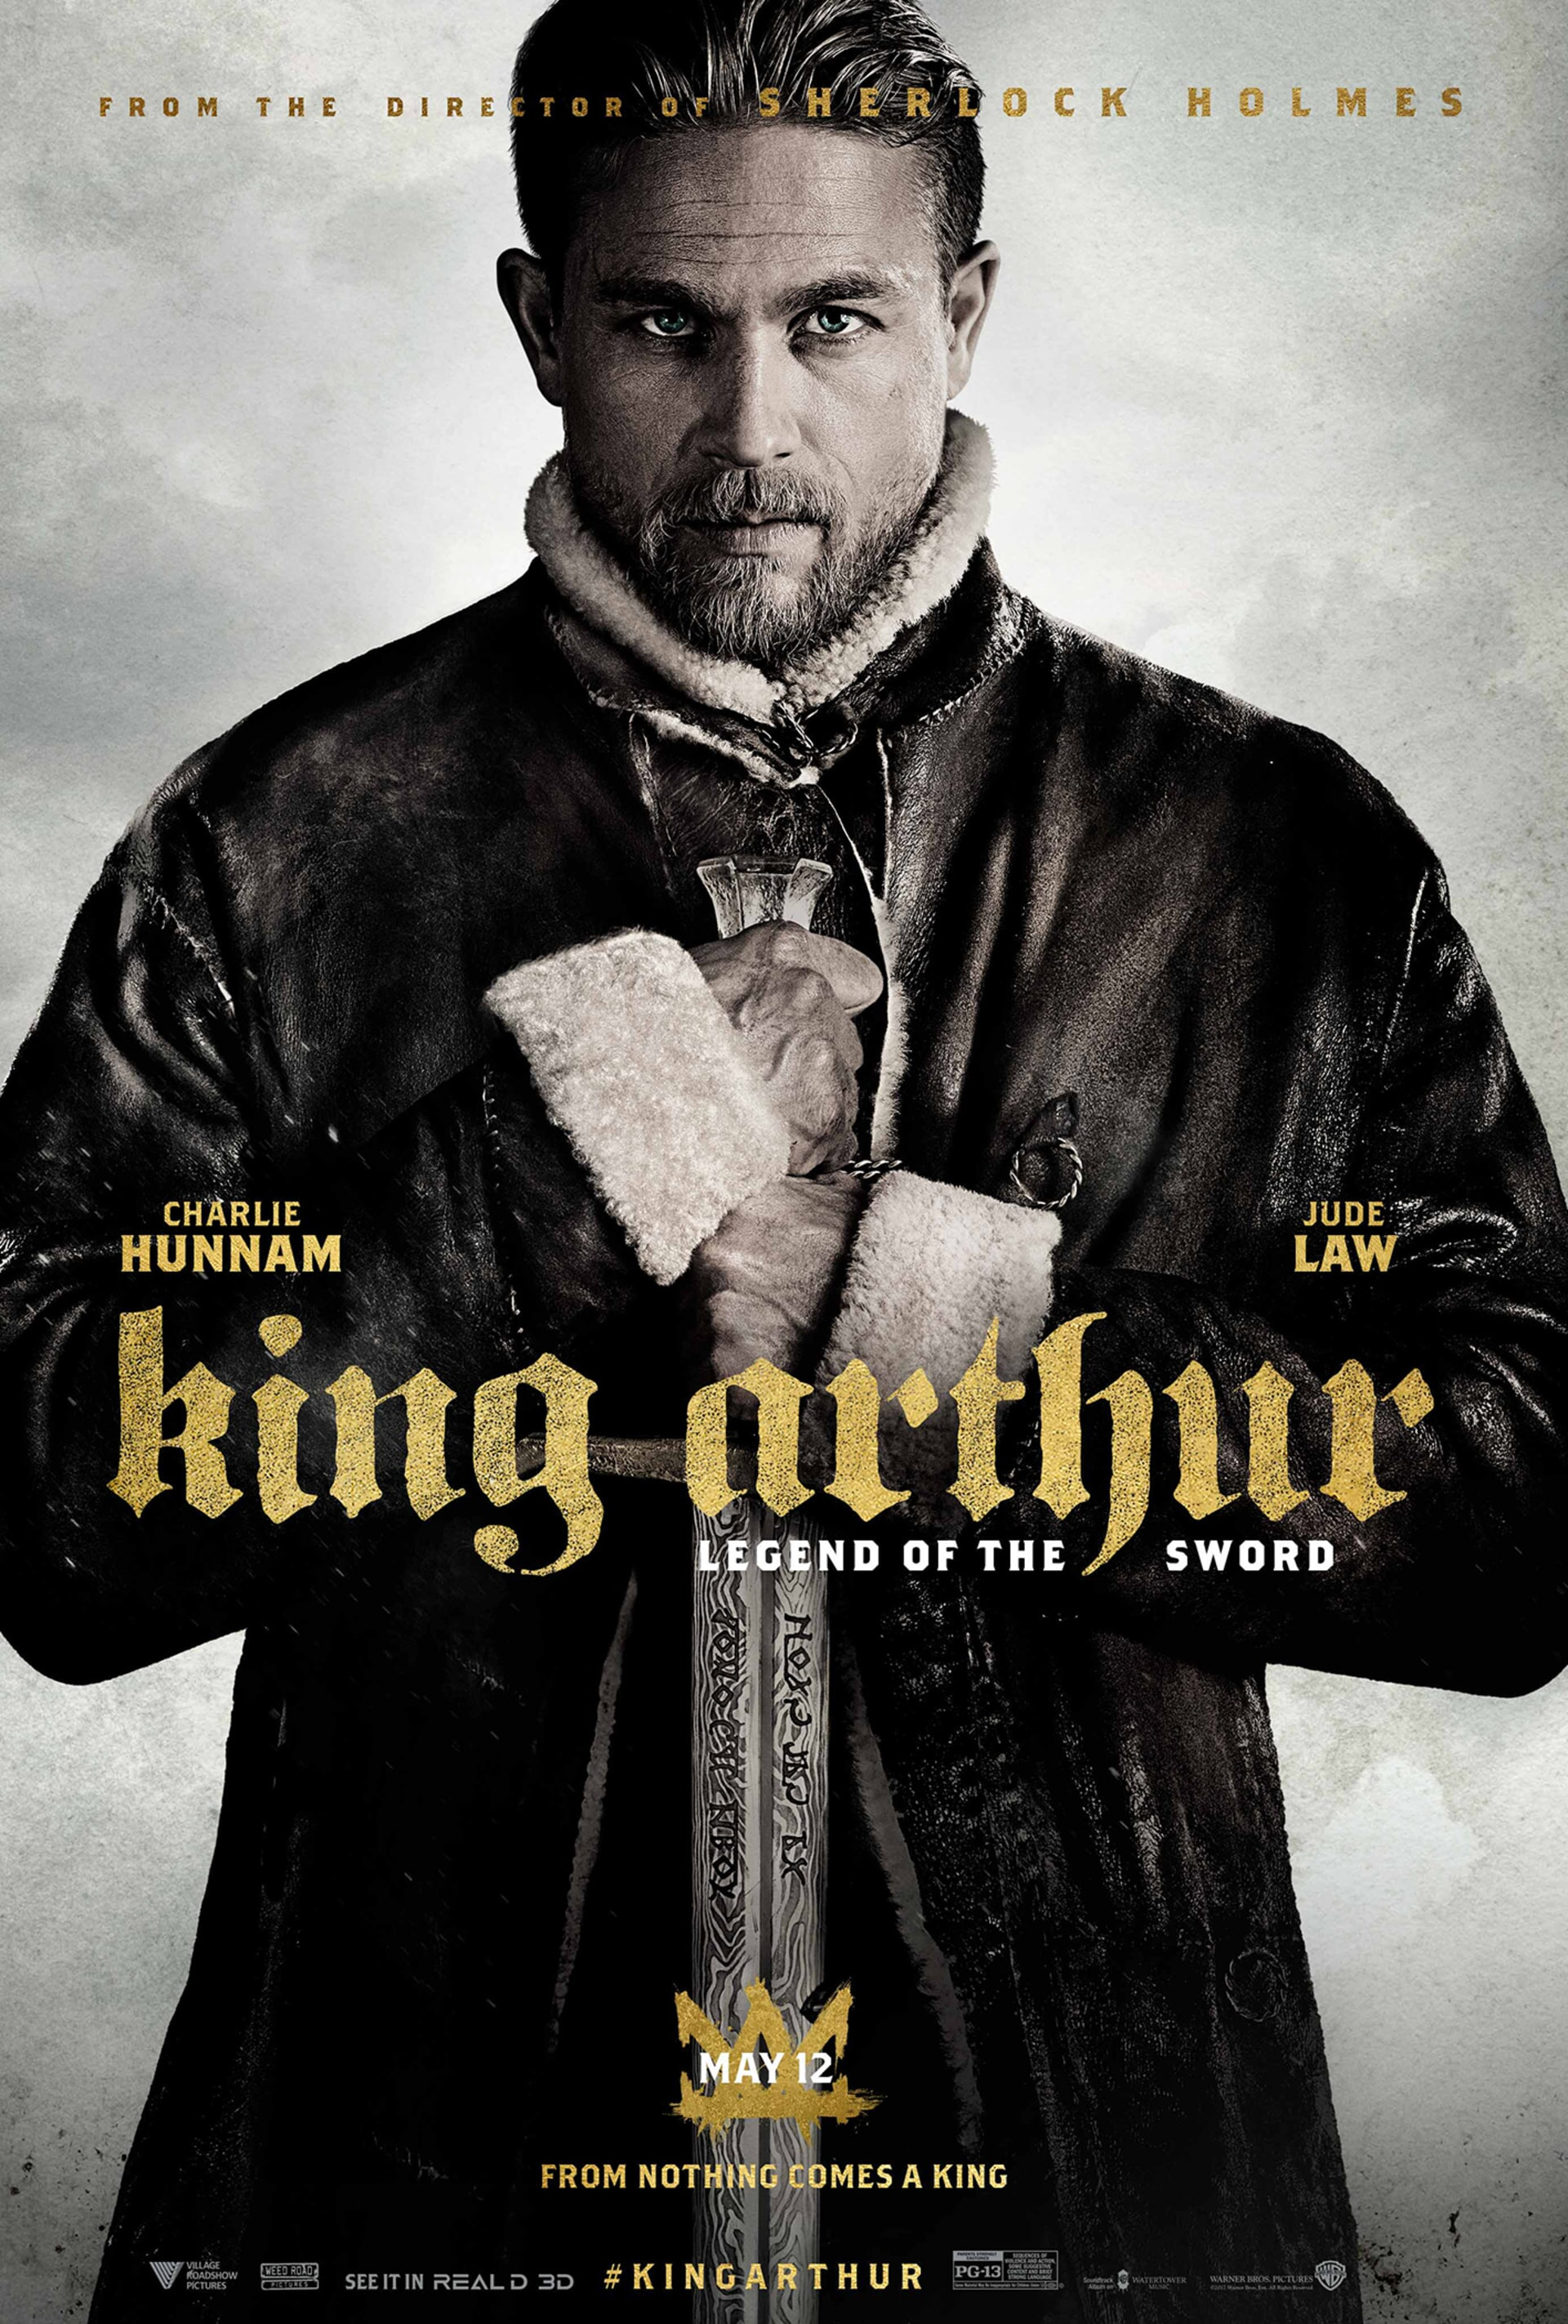 Charlie Hunnam in period costume as King Arthur holding sword pointing down